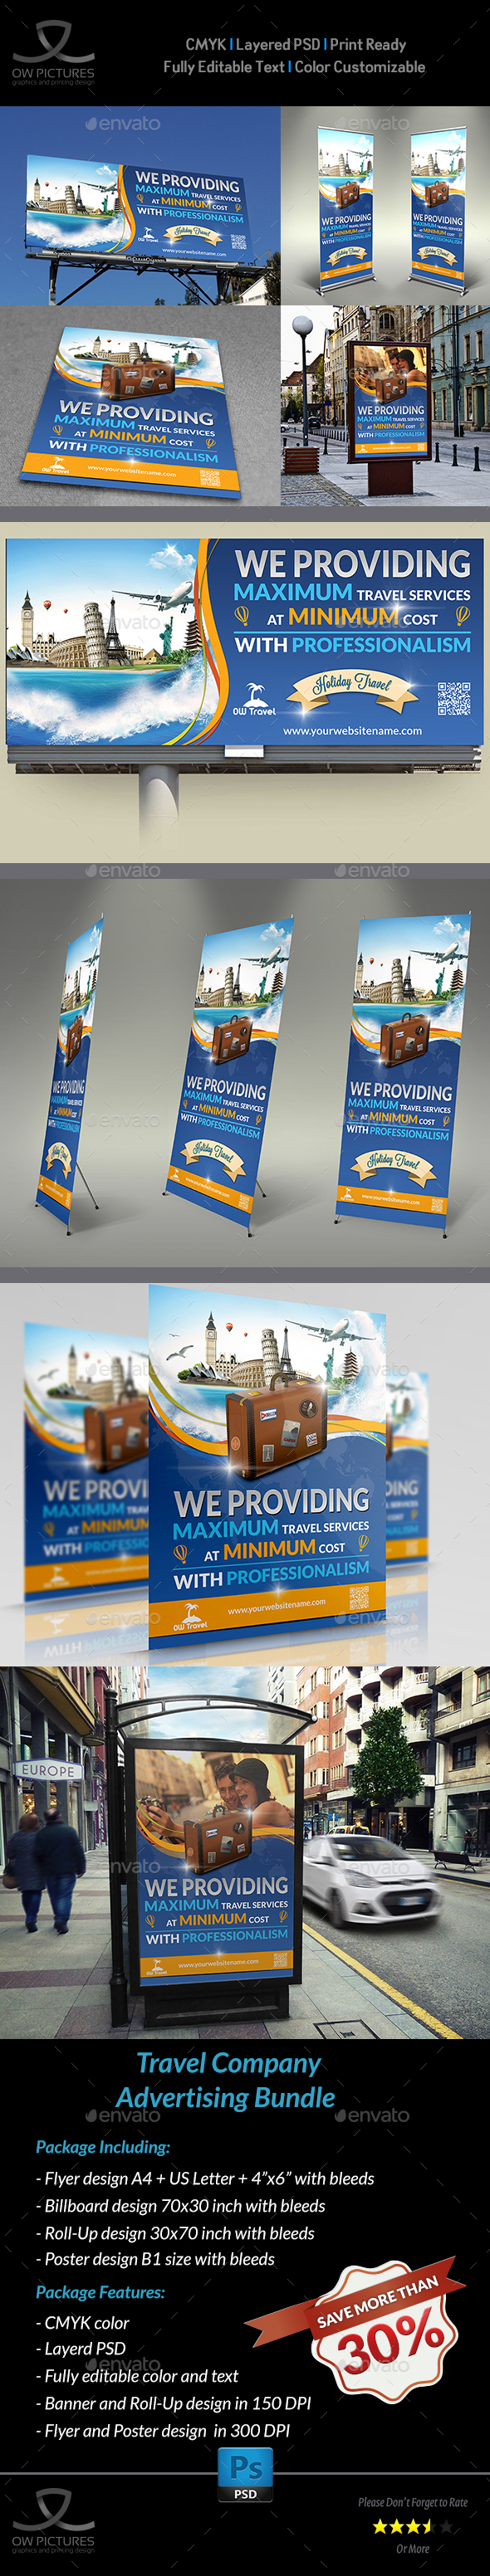 Travel Company Advertising Bundle Template - Signage Print Templates